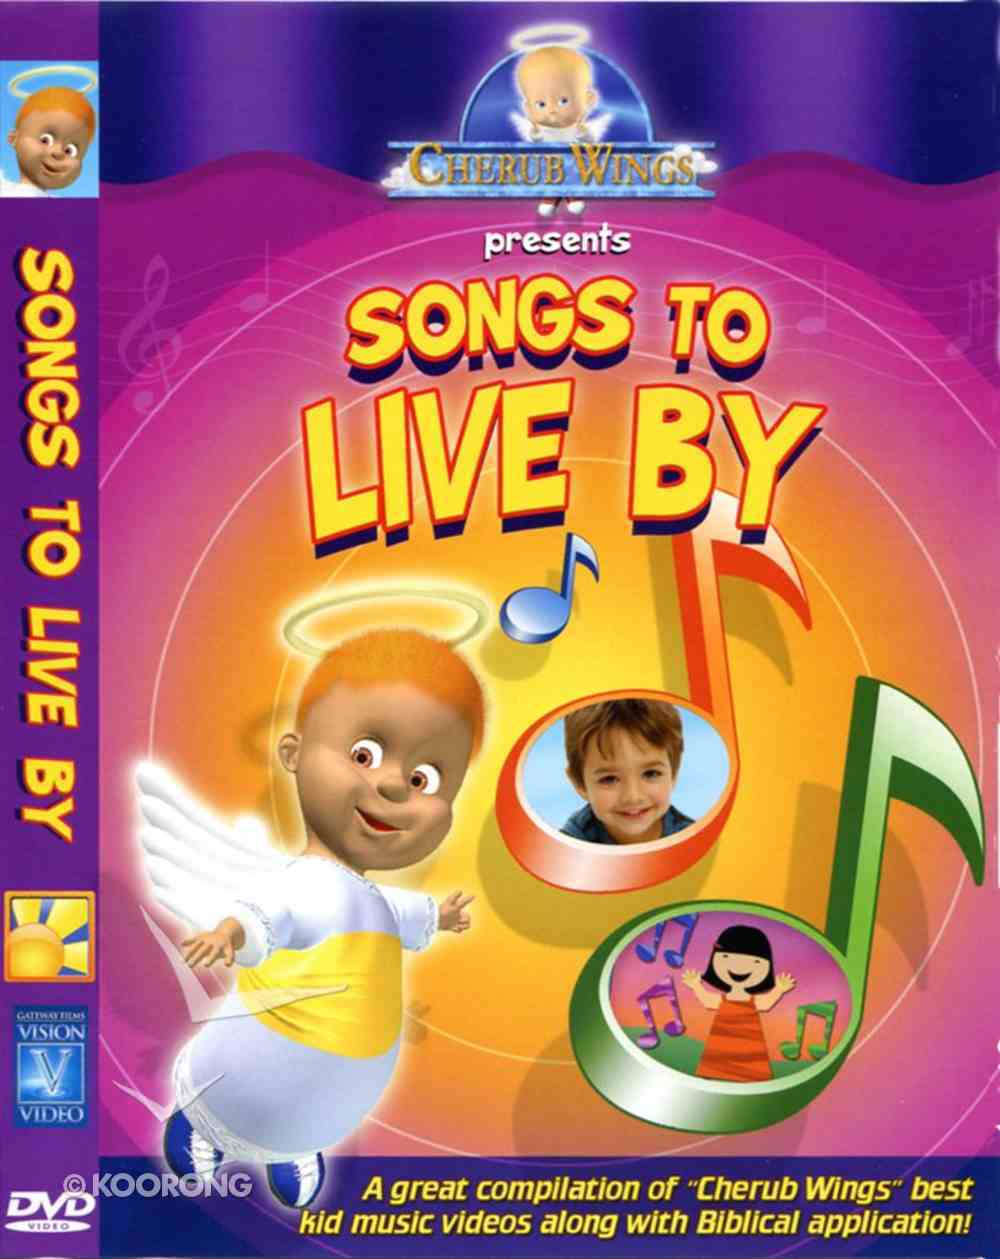 Songs to Live By (Cherub Wings (Dvd) Series) DVD